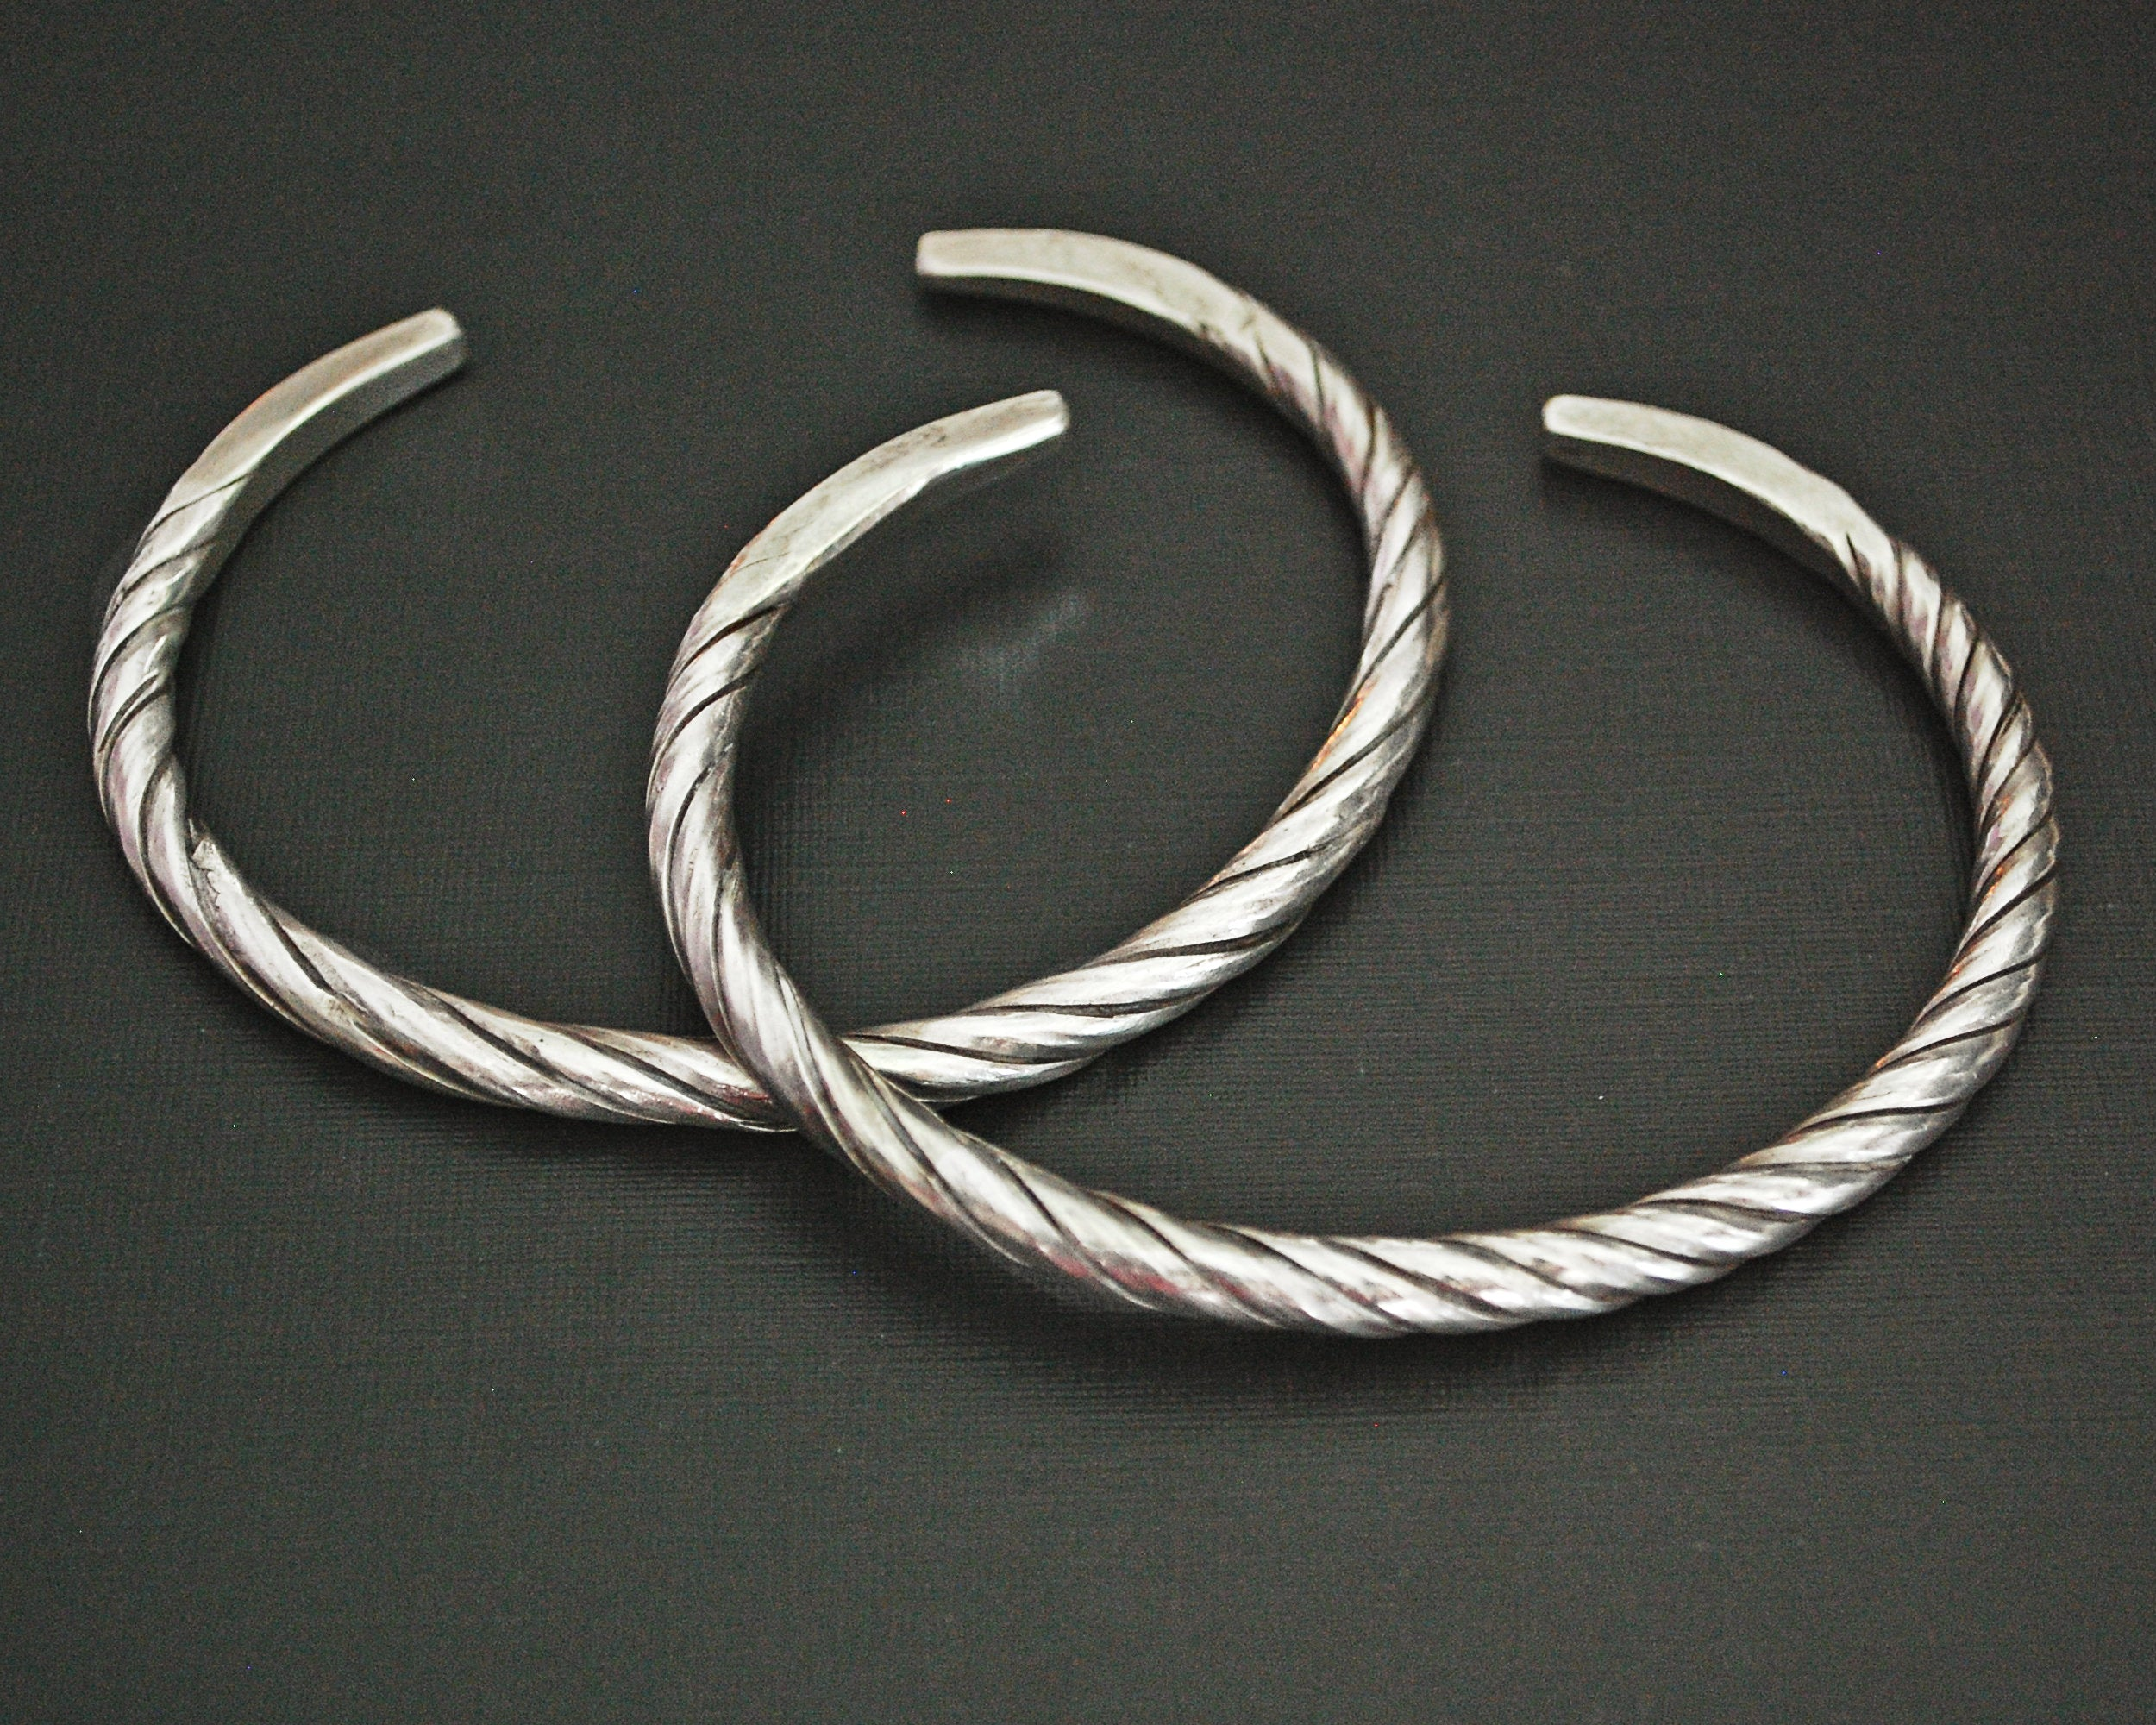 Akha Twisted Silver Bracelet from Laos - Pair